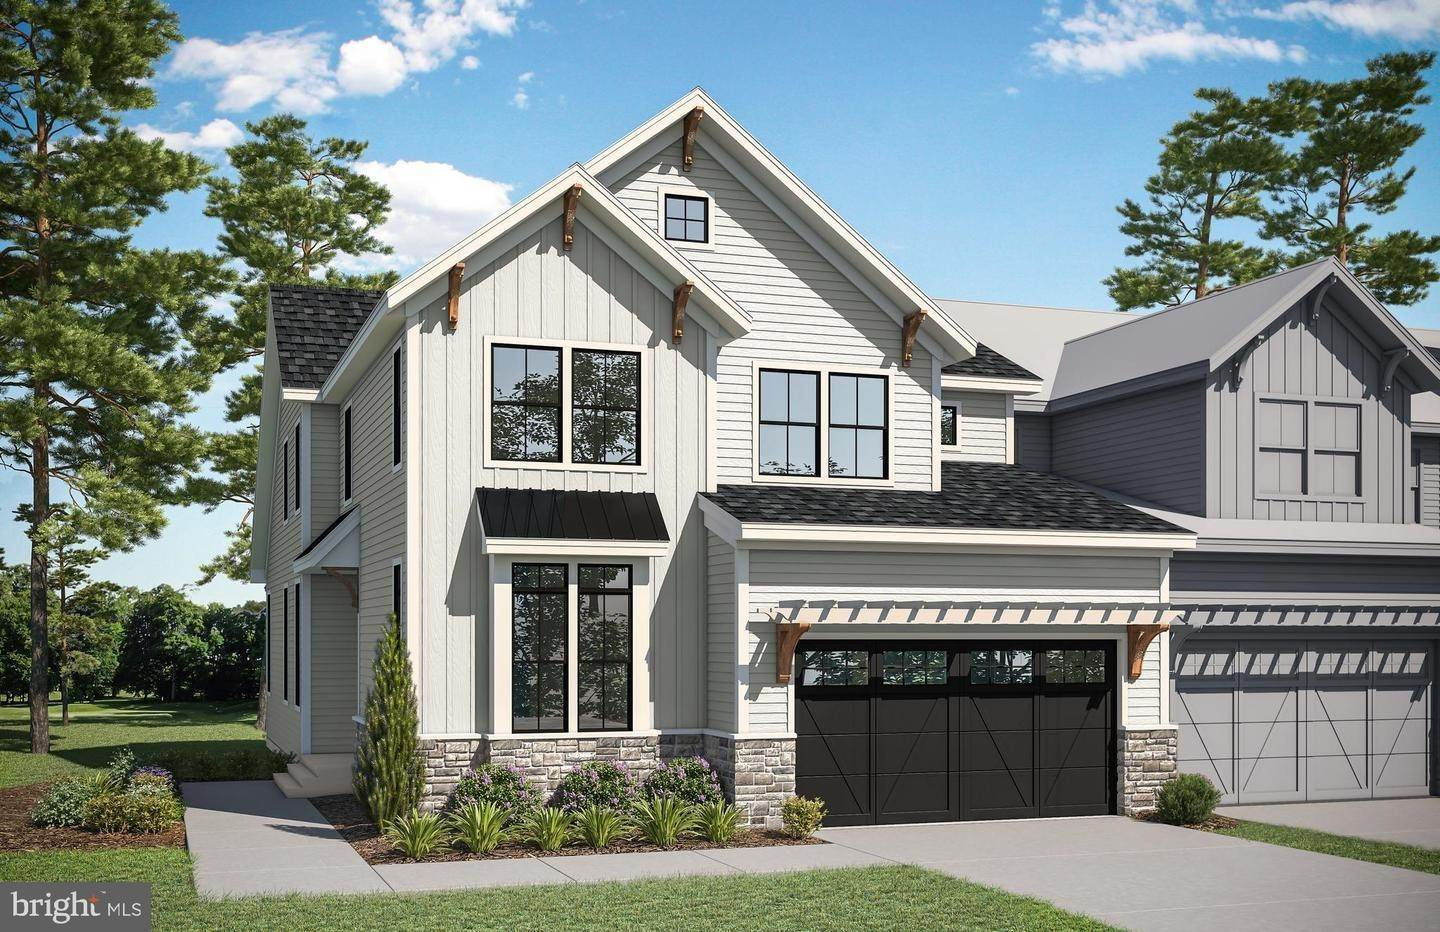 townhouses for Sale at 505 SILL OVERLOOK - LOT 102 Newtown Square, Pennsylvania 19073 United States